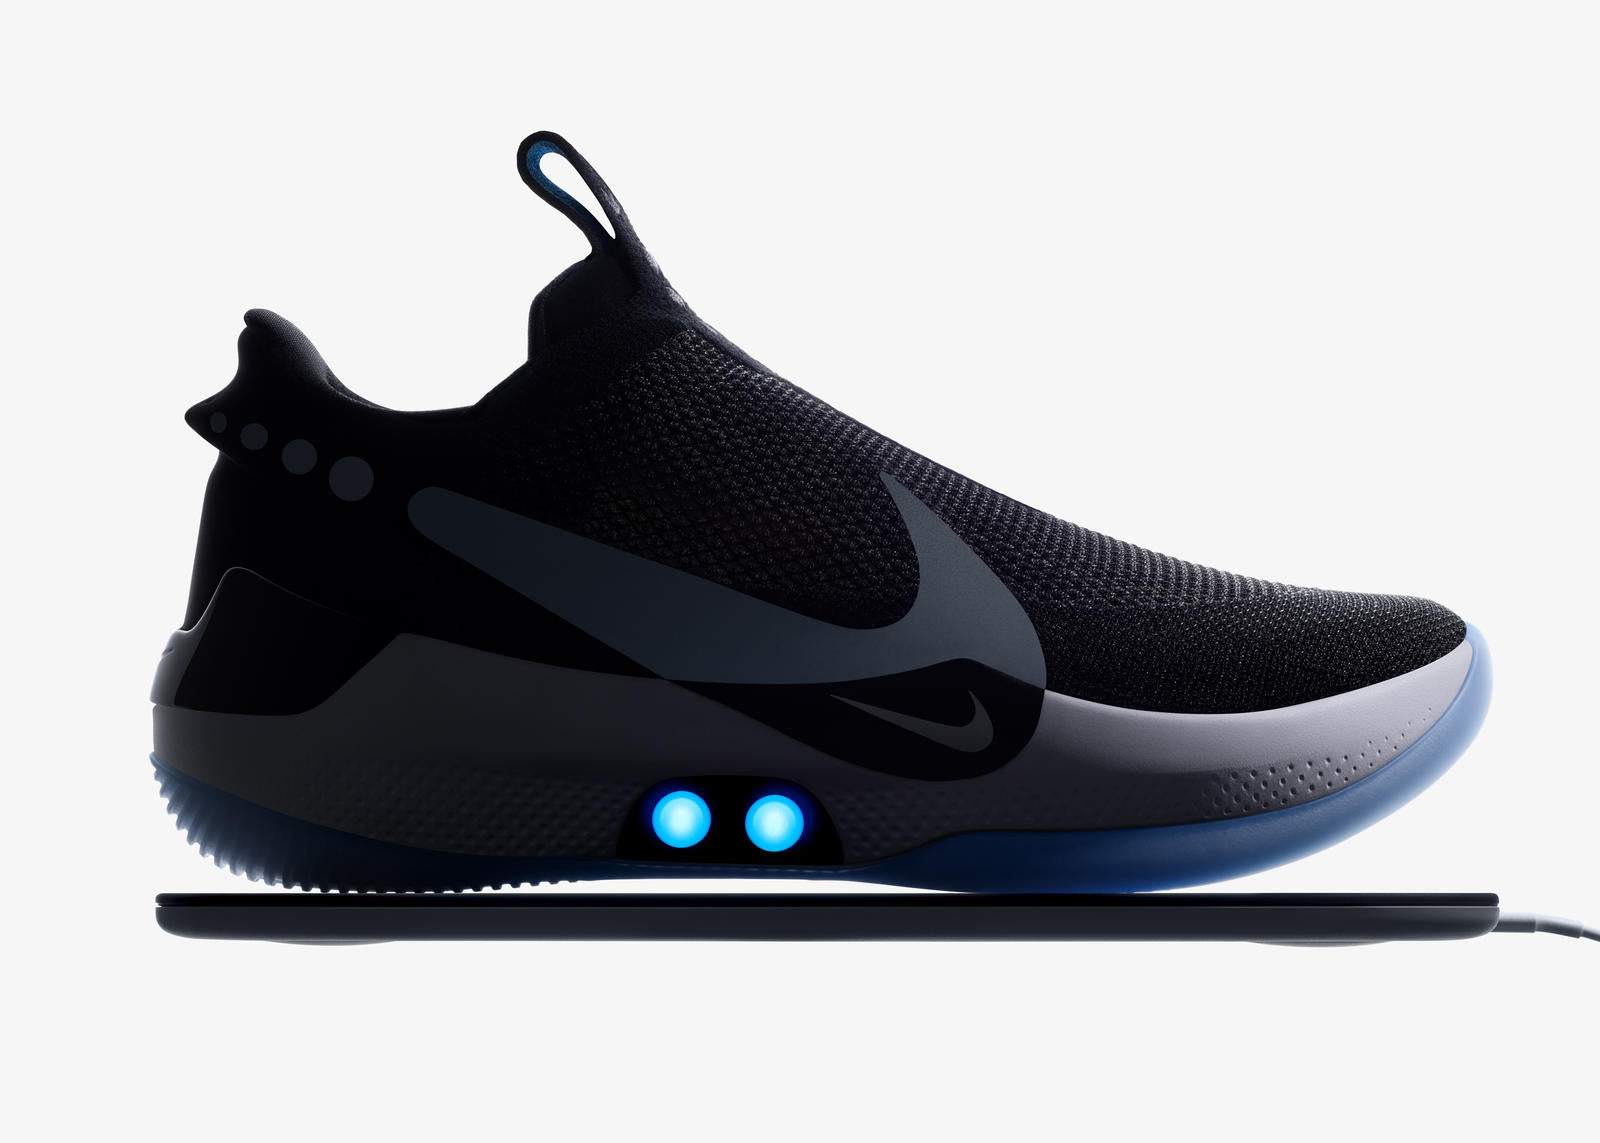 No need to tie your shoe laces with Nike Adapt self-lacing footwear